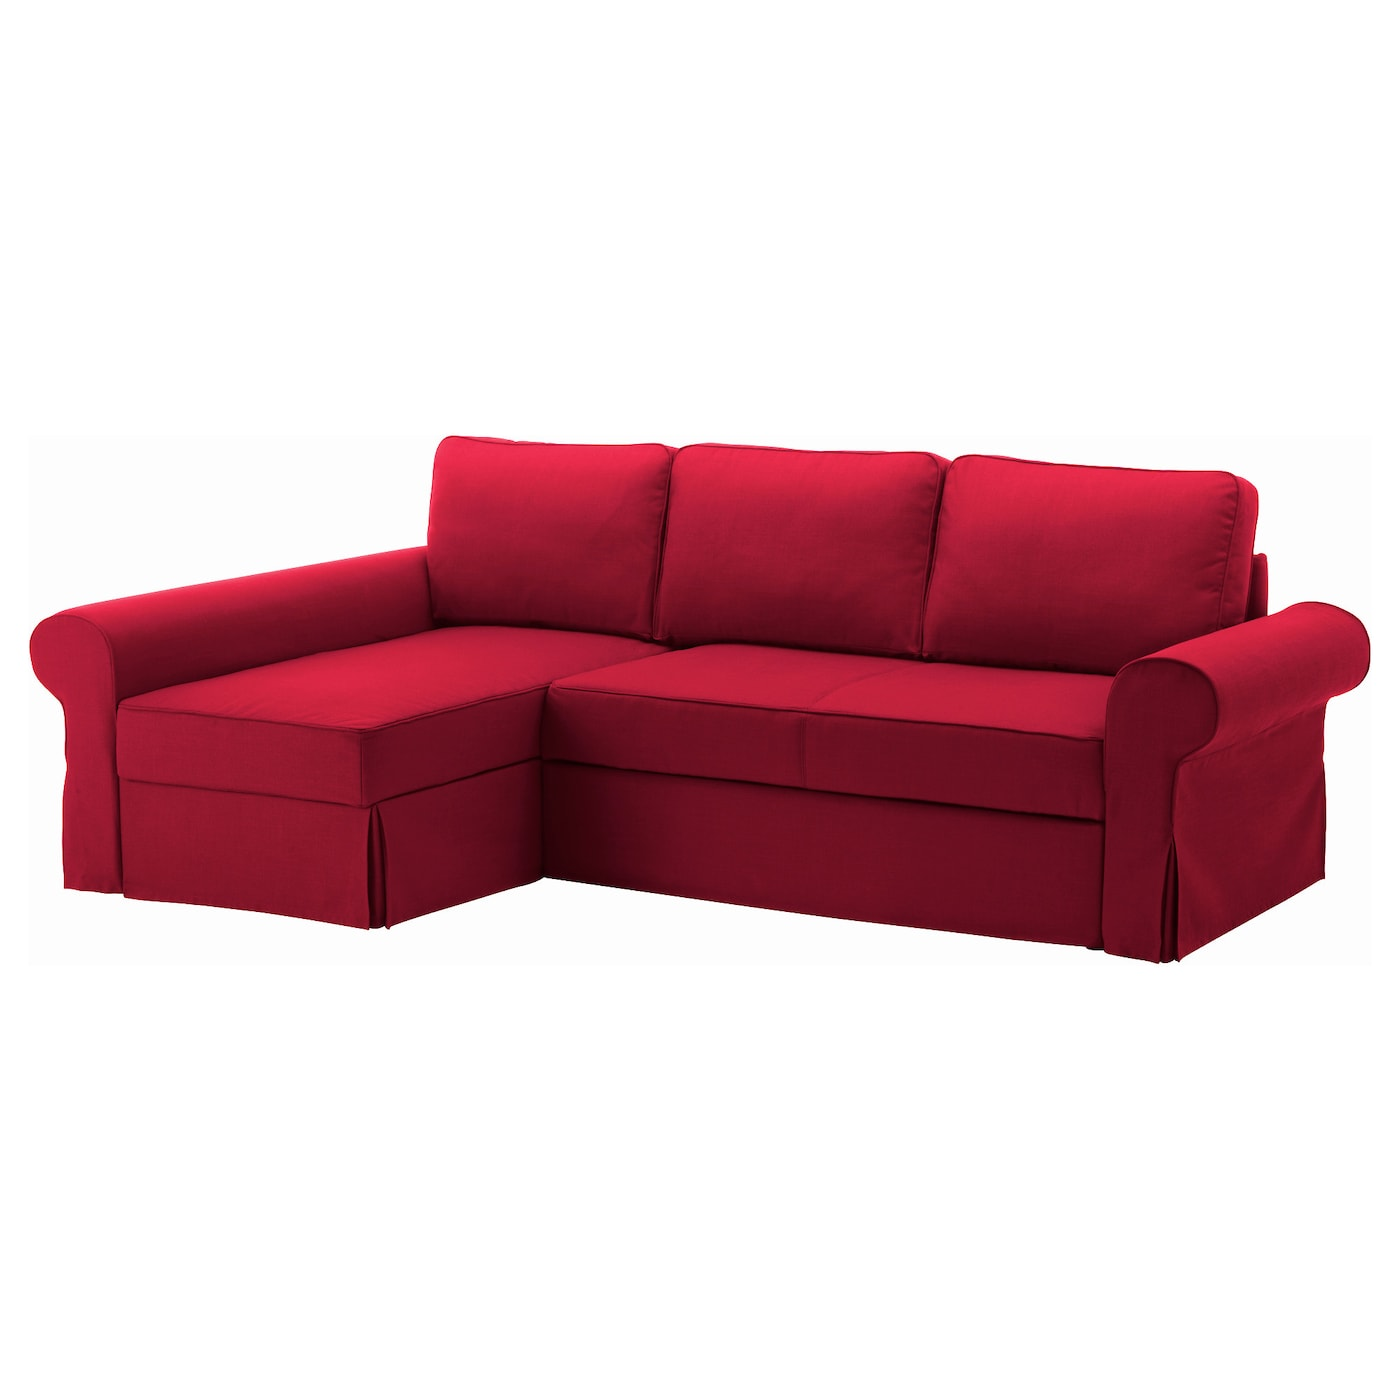 Backabro sofa bed with chaise longue nordvalla red ikea for Chaise longue style sofa